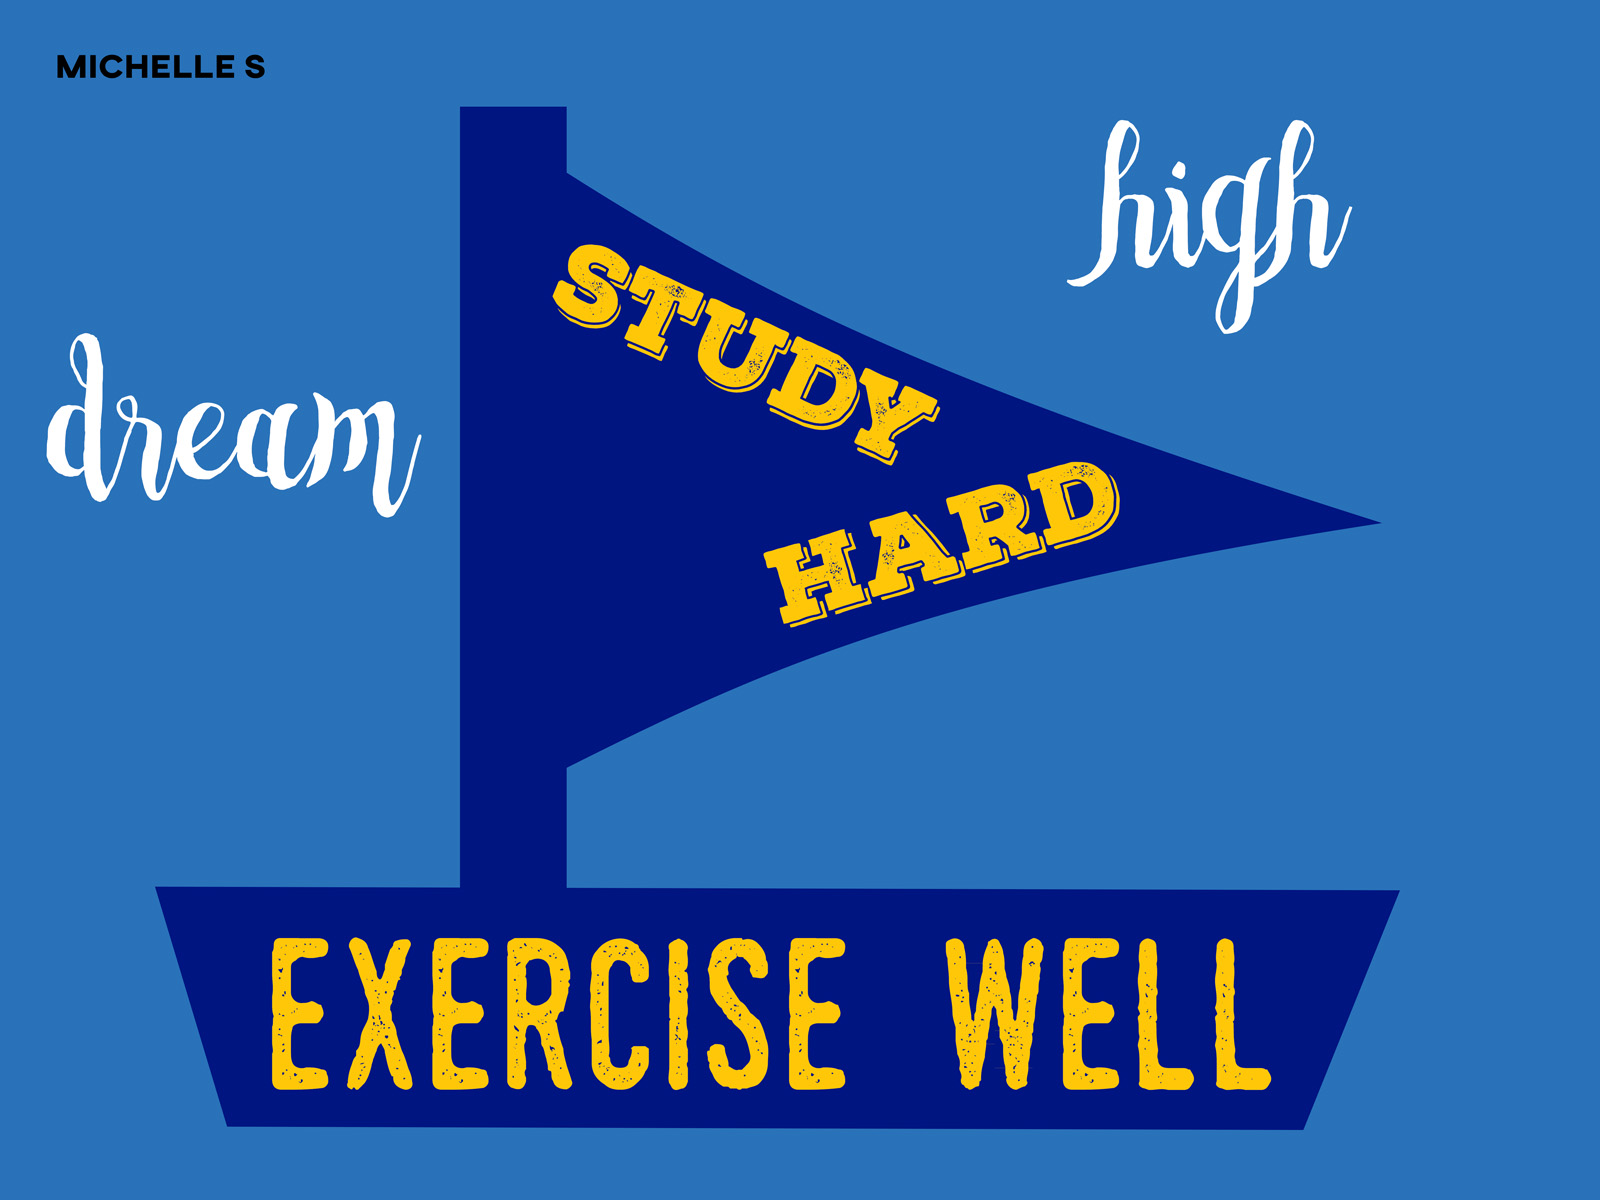 Study hard, exercise well, dream high.